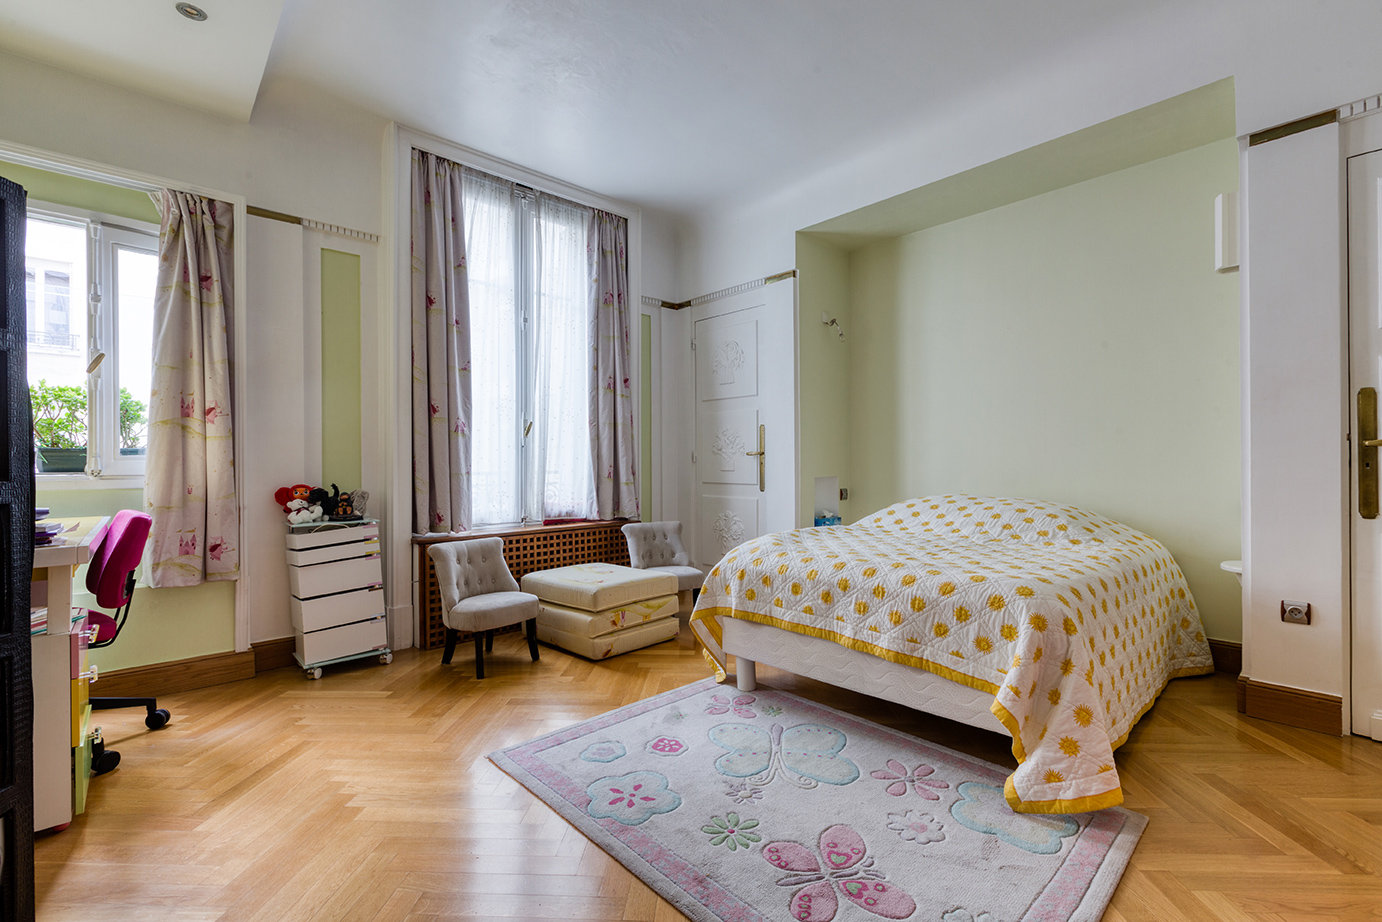 Sale Apartment - Paris 7th (Paris 7ème)